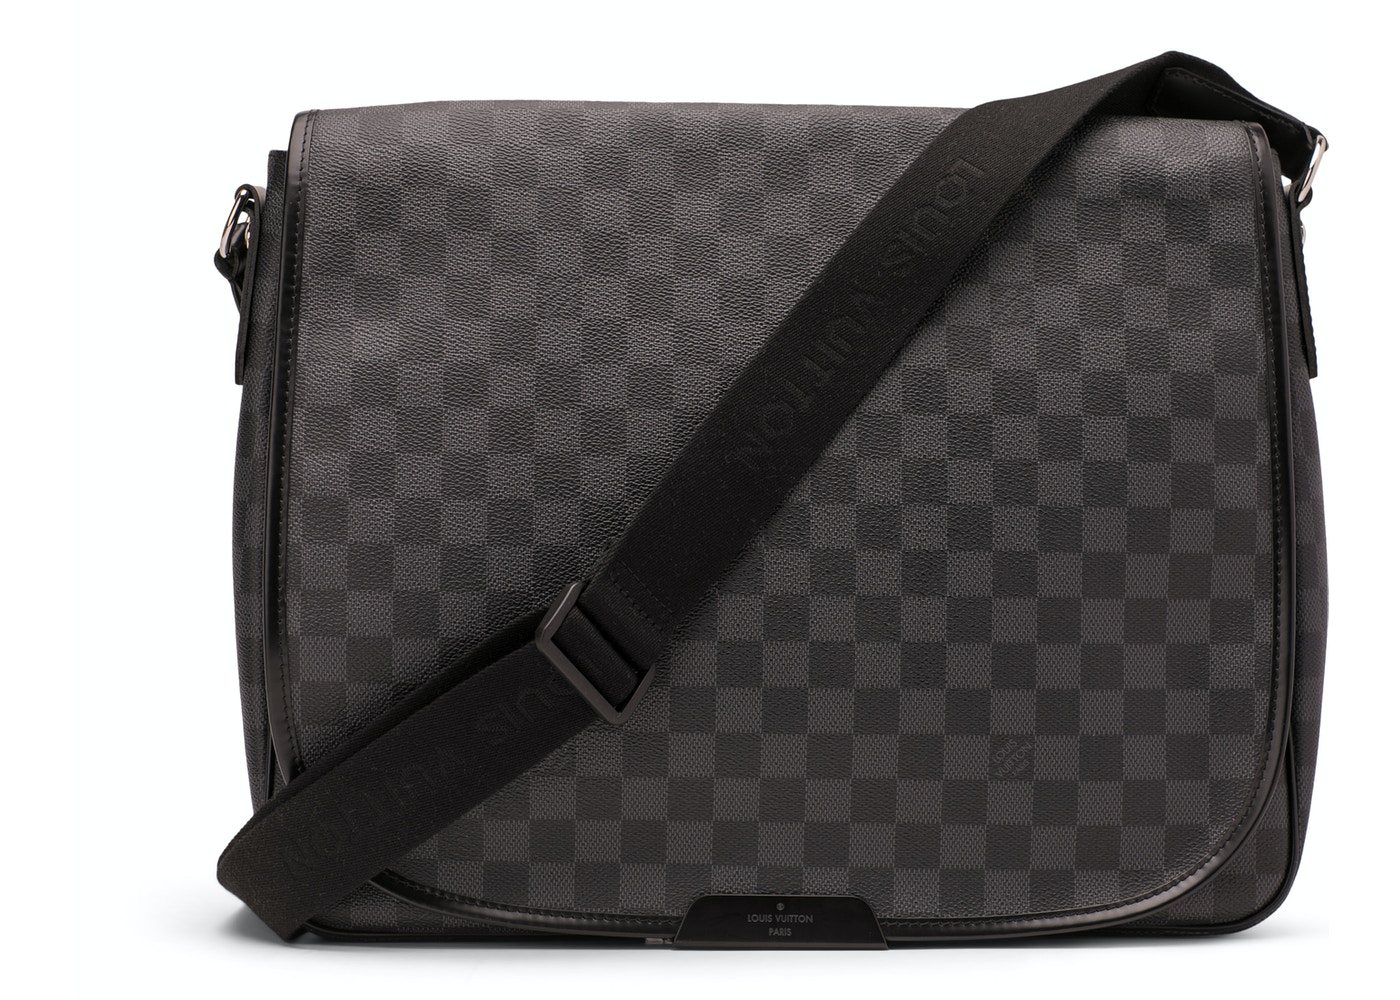 345508b6cf91 Louis Vuitton Daniel Damier Graphite GM Black. Damier Graphite GM Black